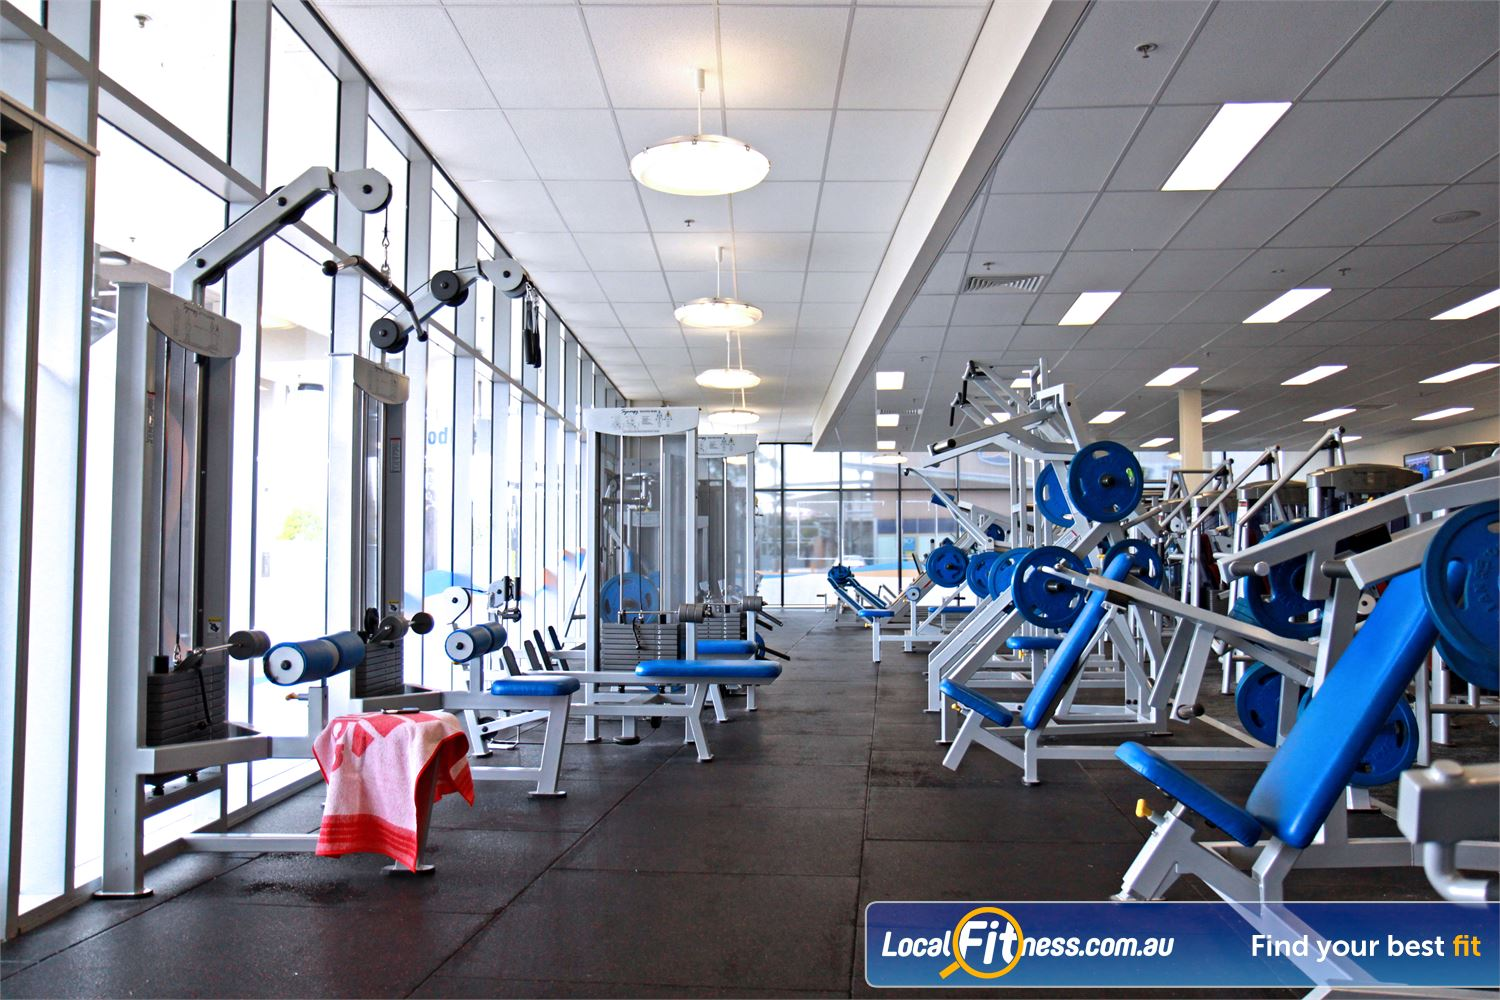 Goodlife Health Clubs Near West Ipswich At our Ipswich gym, pick from a large selection of plate-loading machines and free-weights.